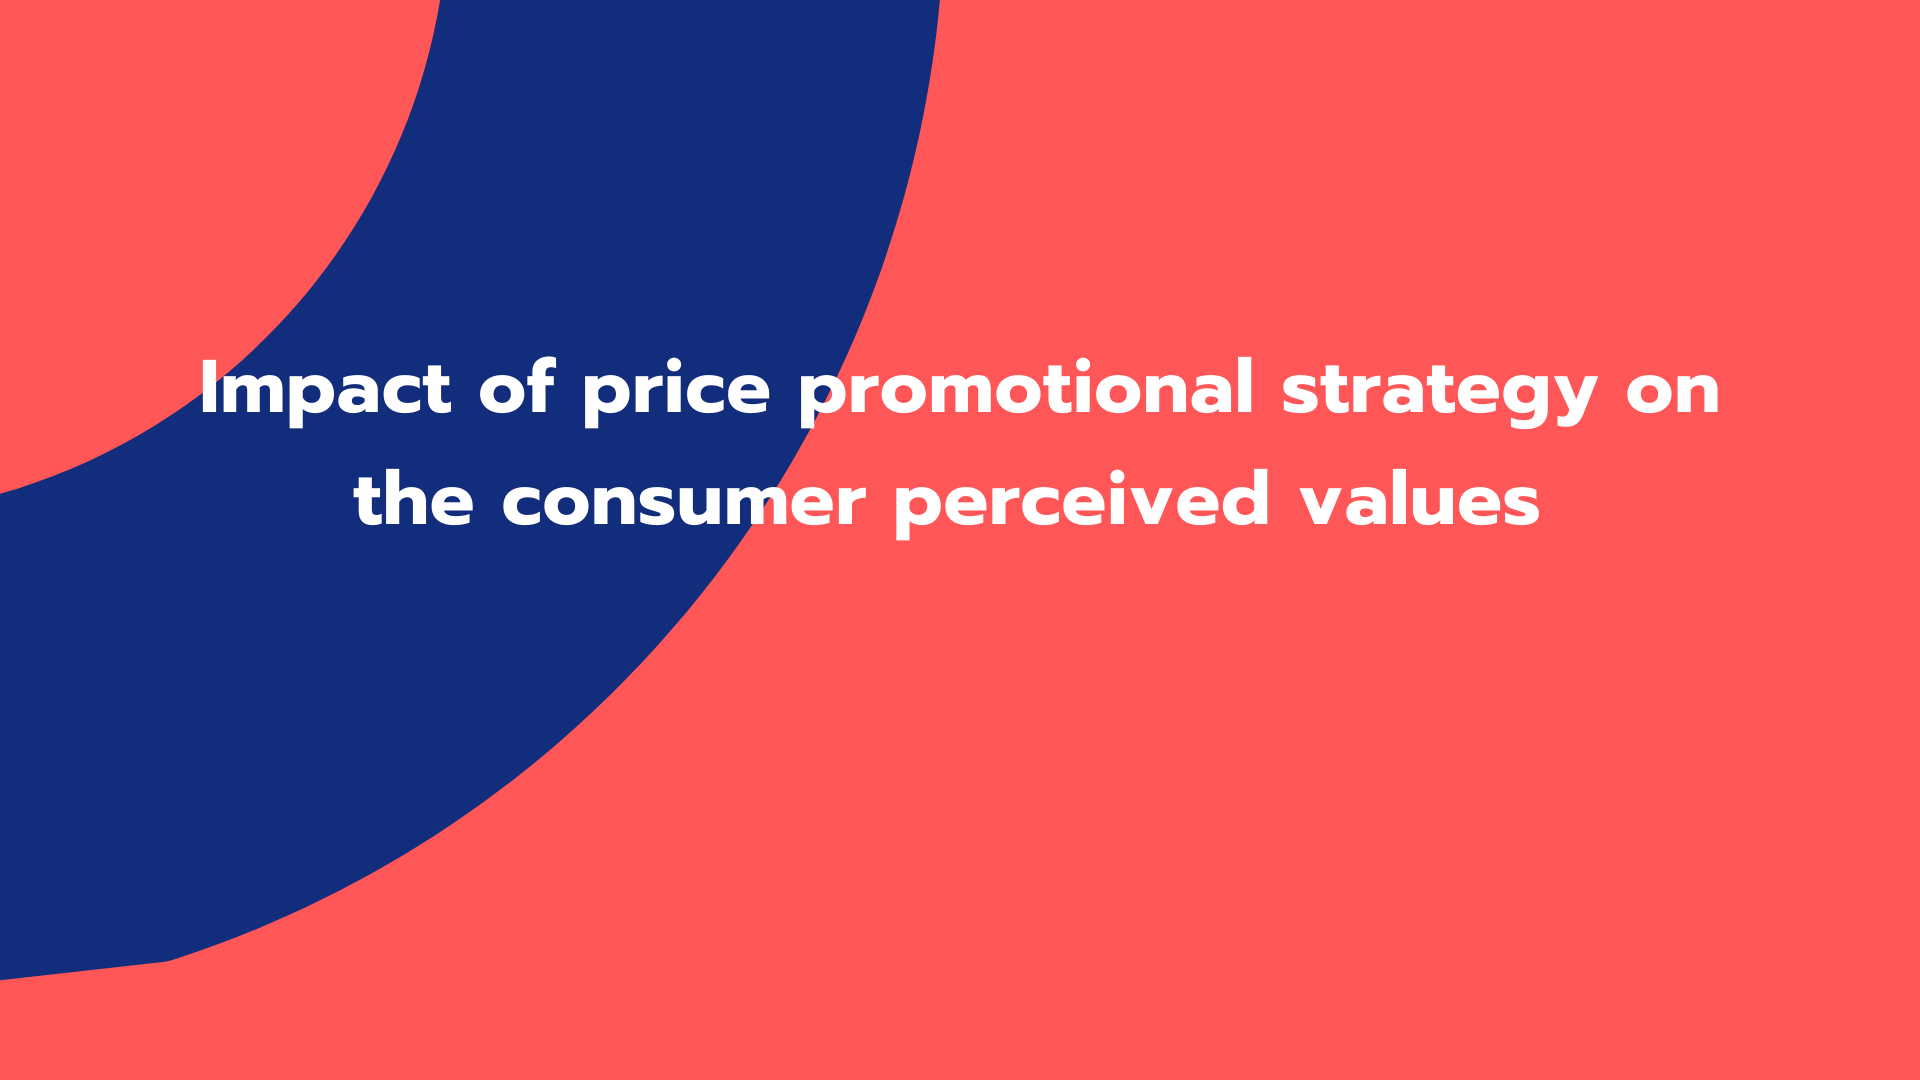 Impact of price promotional strategy on the consumer perceived values